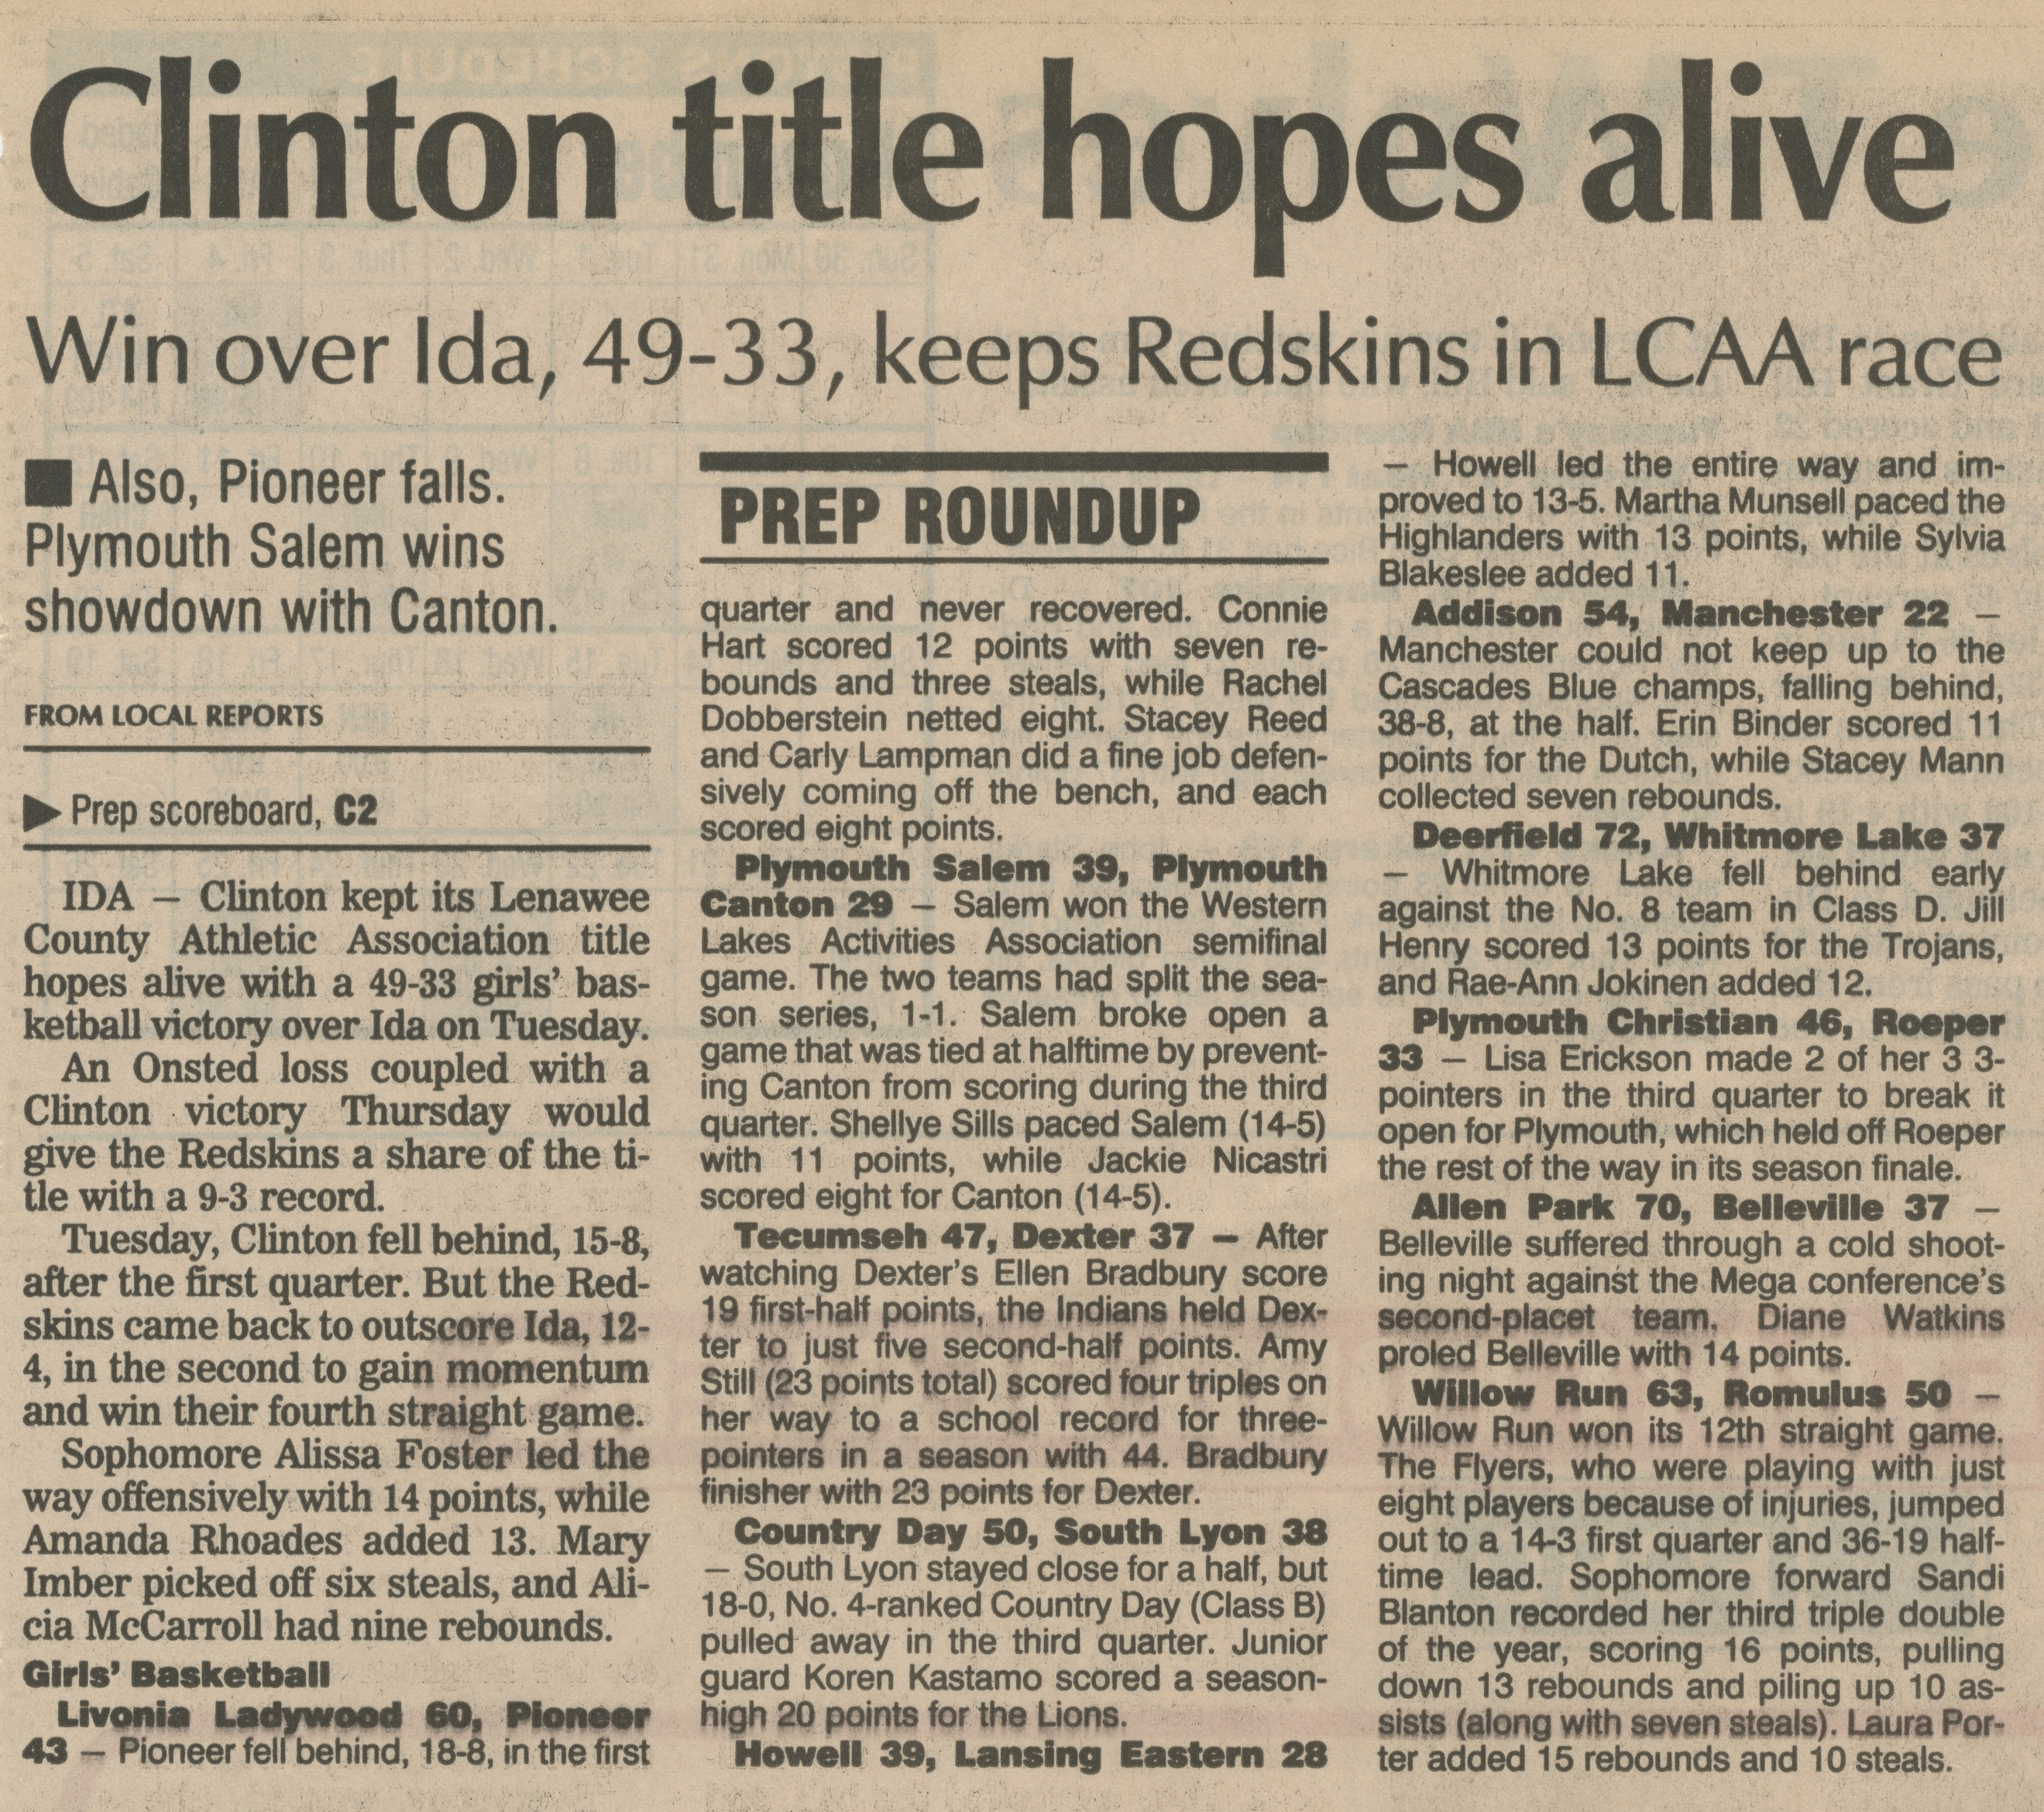 Prep Roundup:  Clinton Title Hopes Alive - Win Over Ida, 49 - 33, Keeps Redskins In LCAA Race image